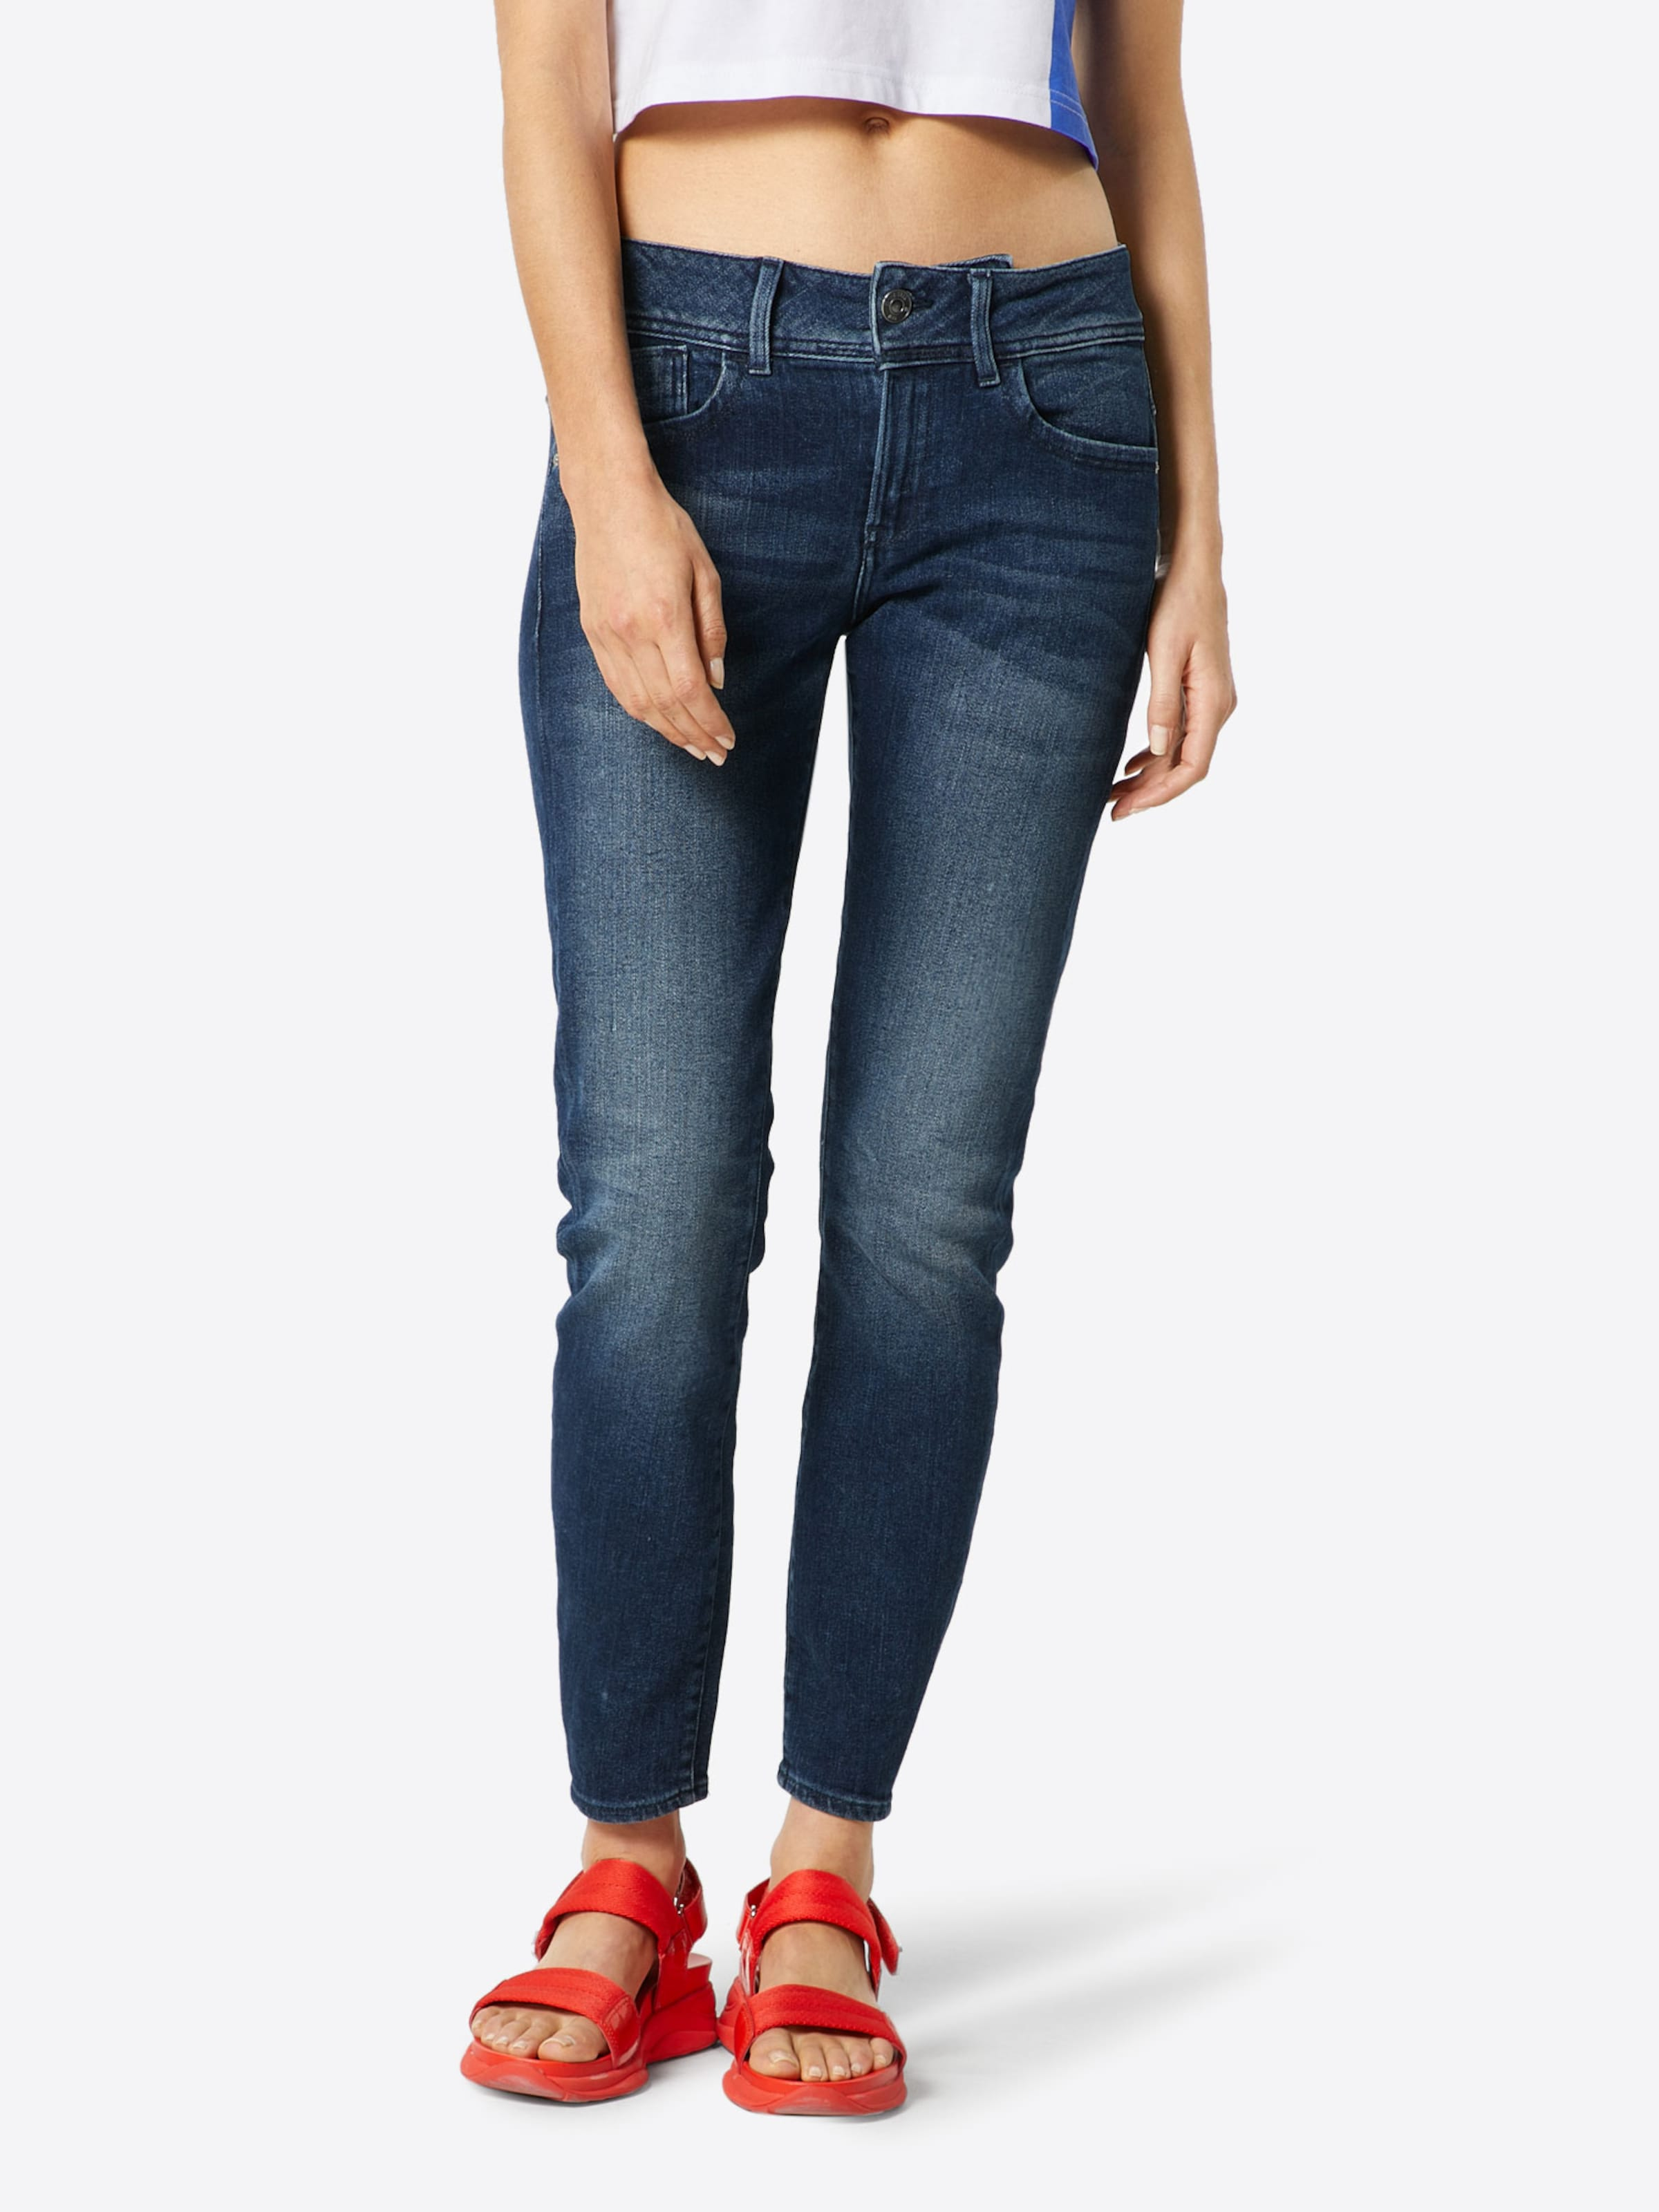 Raw Bleu Jean En Denim star G kXnP8w0O